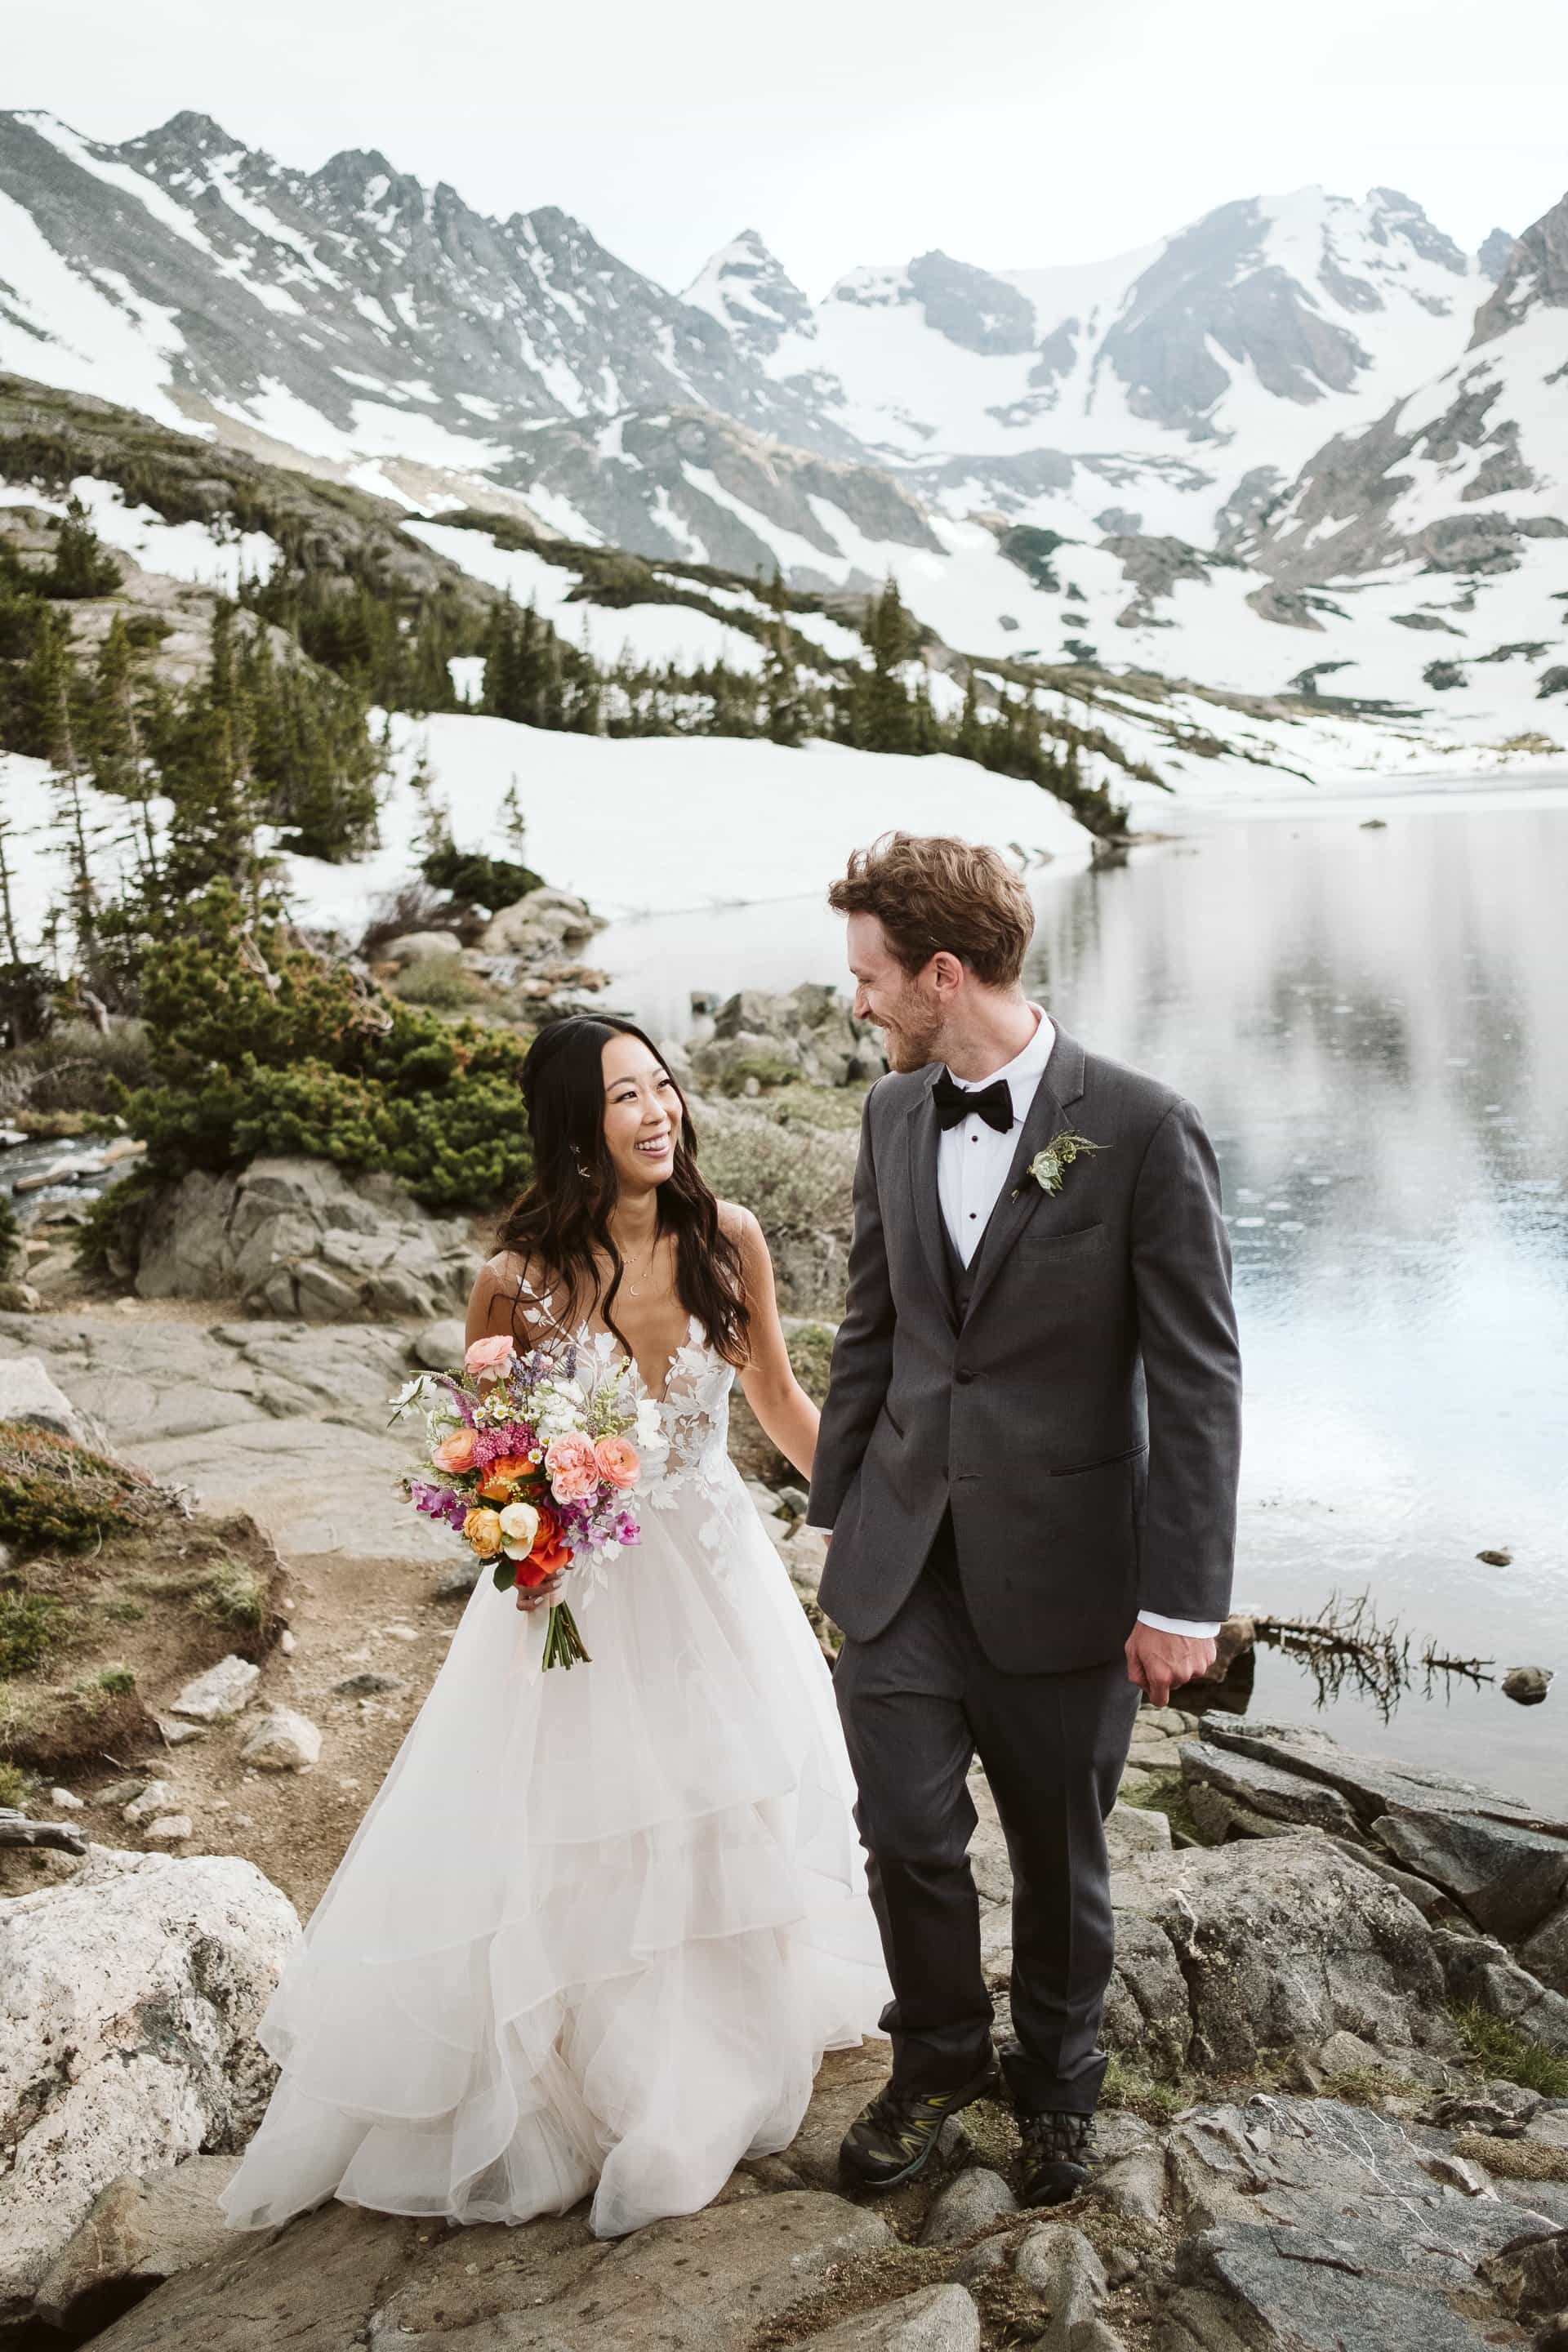 Hiking adventure elopement in the Colorado mountains, Boulder wedding photographer, Indian Peaks Wilderness elopement